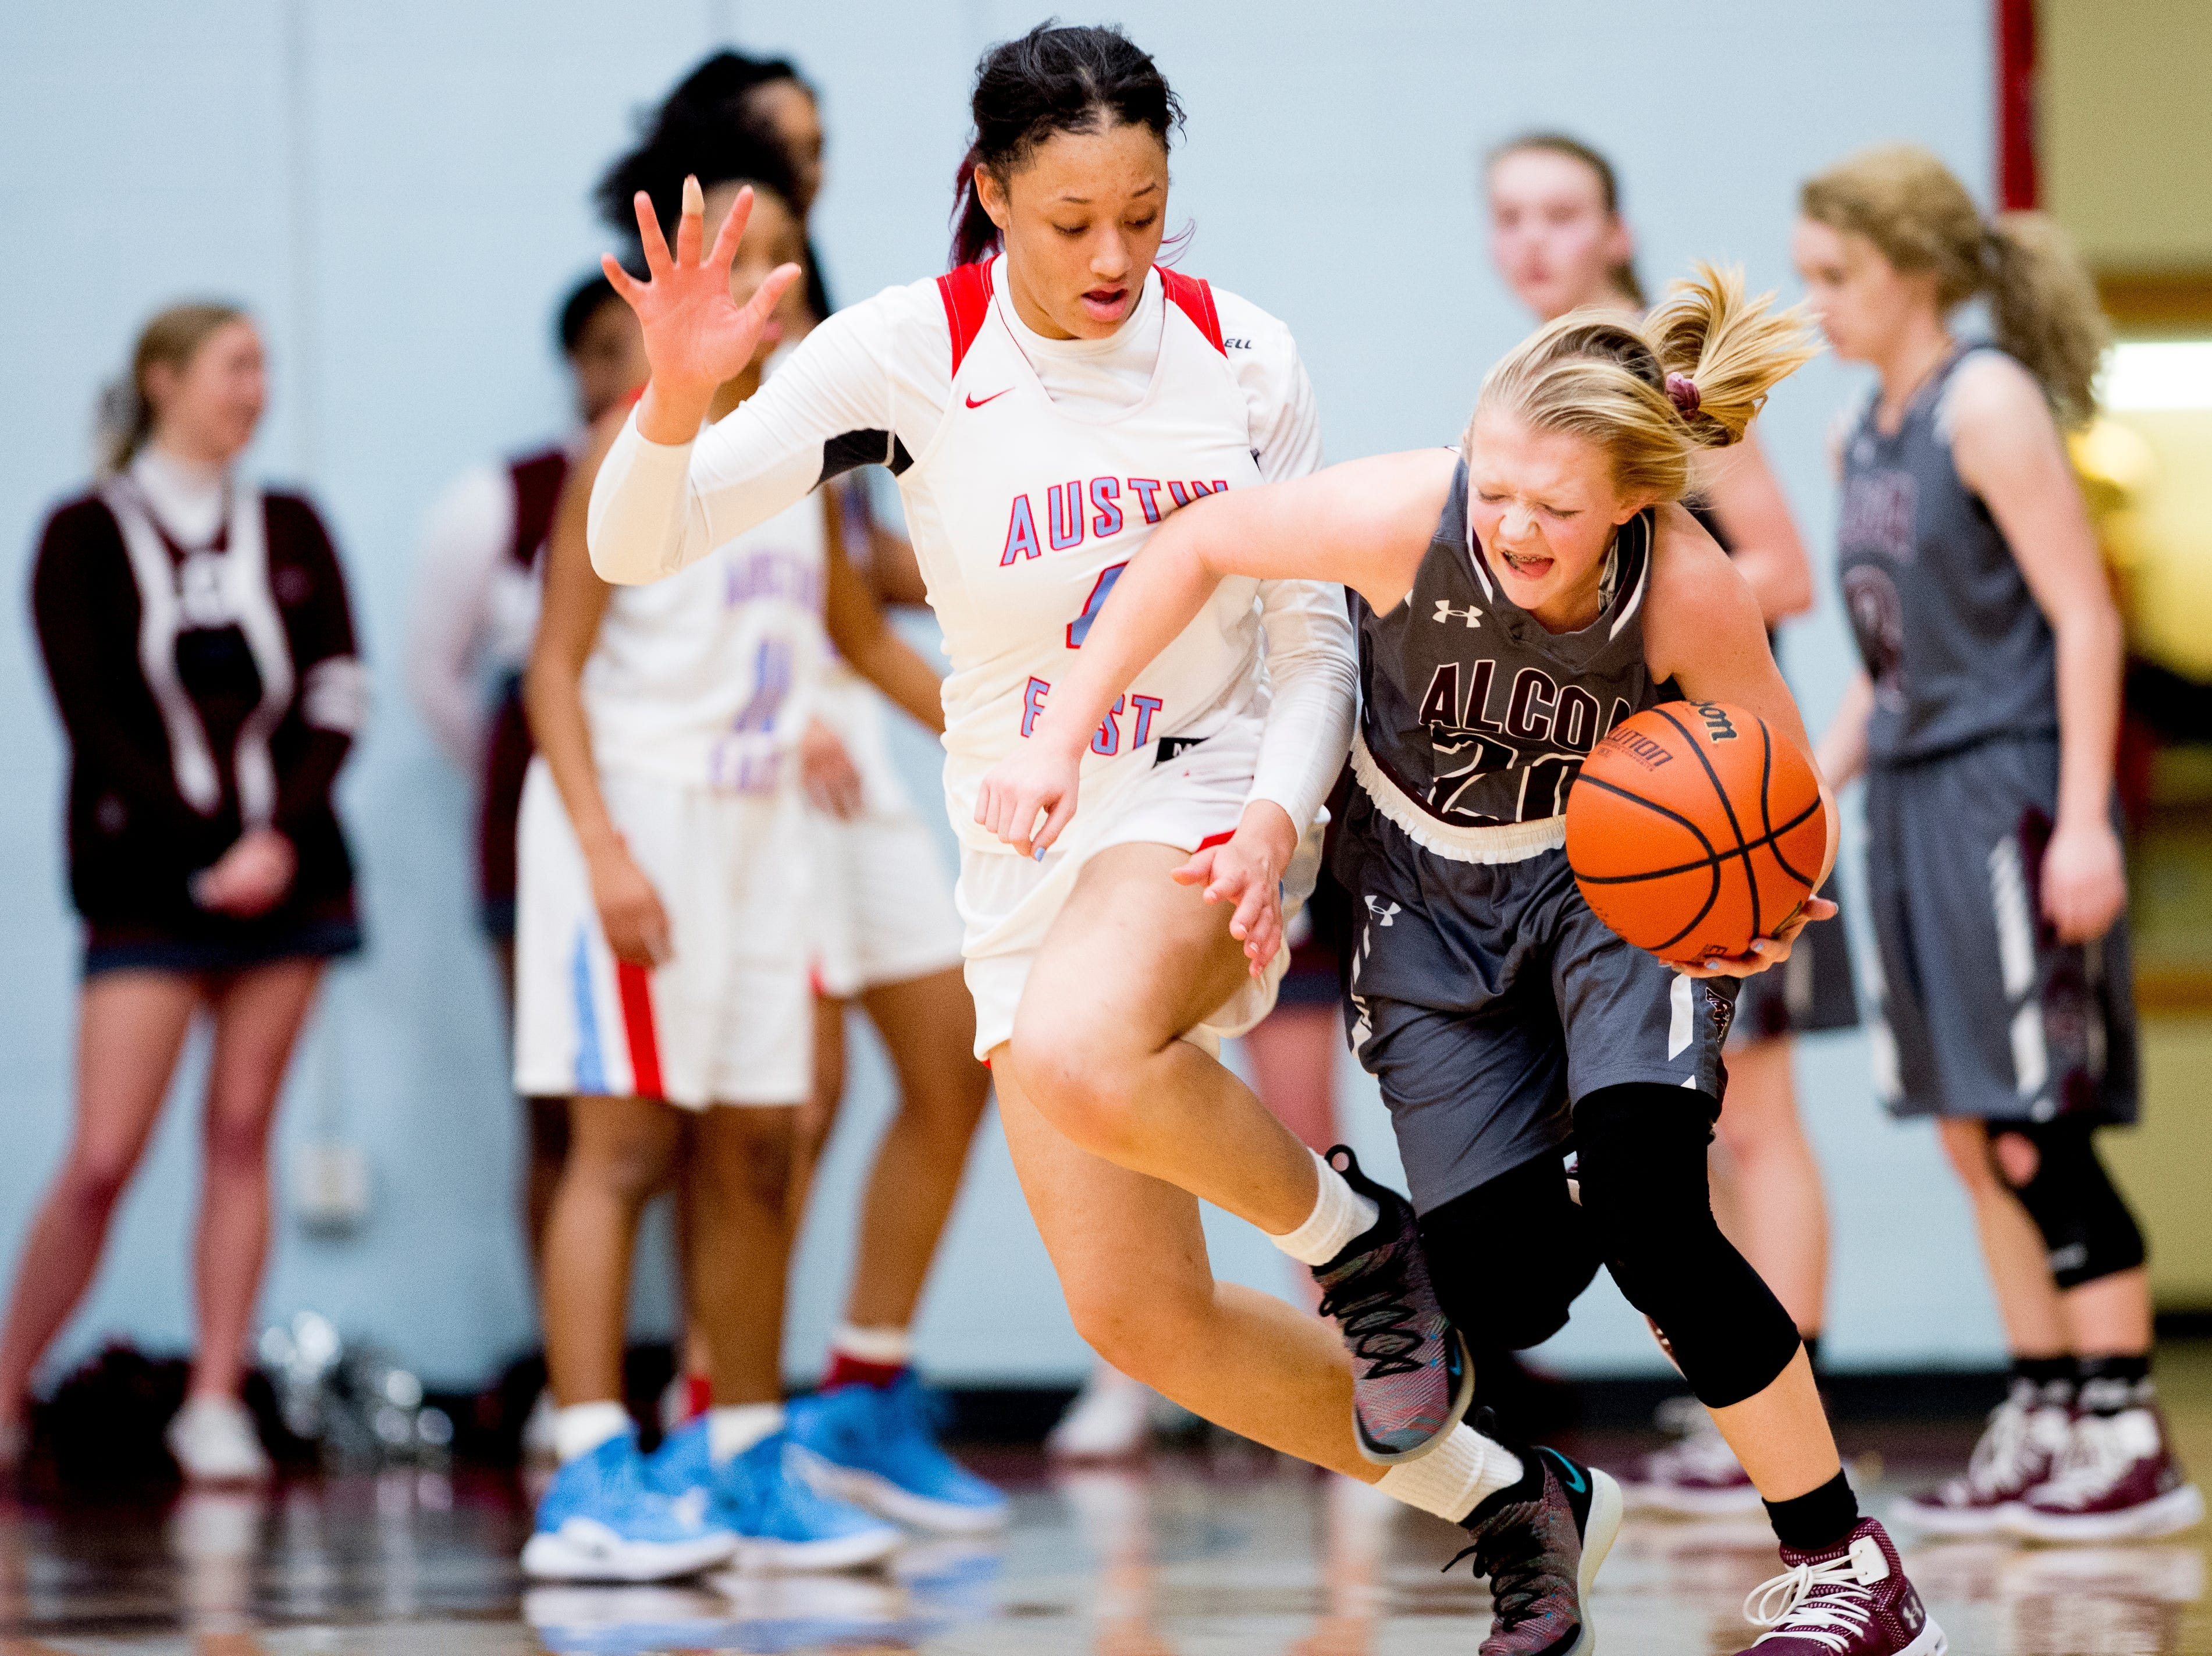 Austin-East's Larriana Bullard (4) defends against Alcoa's Alexis Marshall (20) during a game between Austin-East and Alcoa at Austin-East High School in Knoxville, Tennessee on Friday, January 18, 2019.